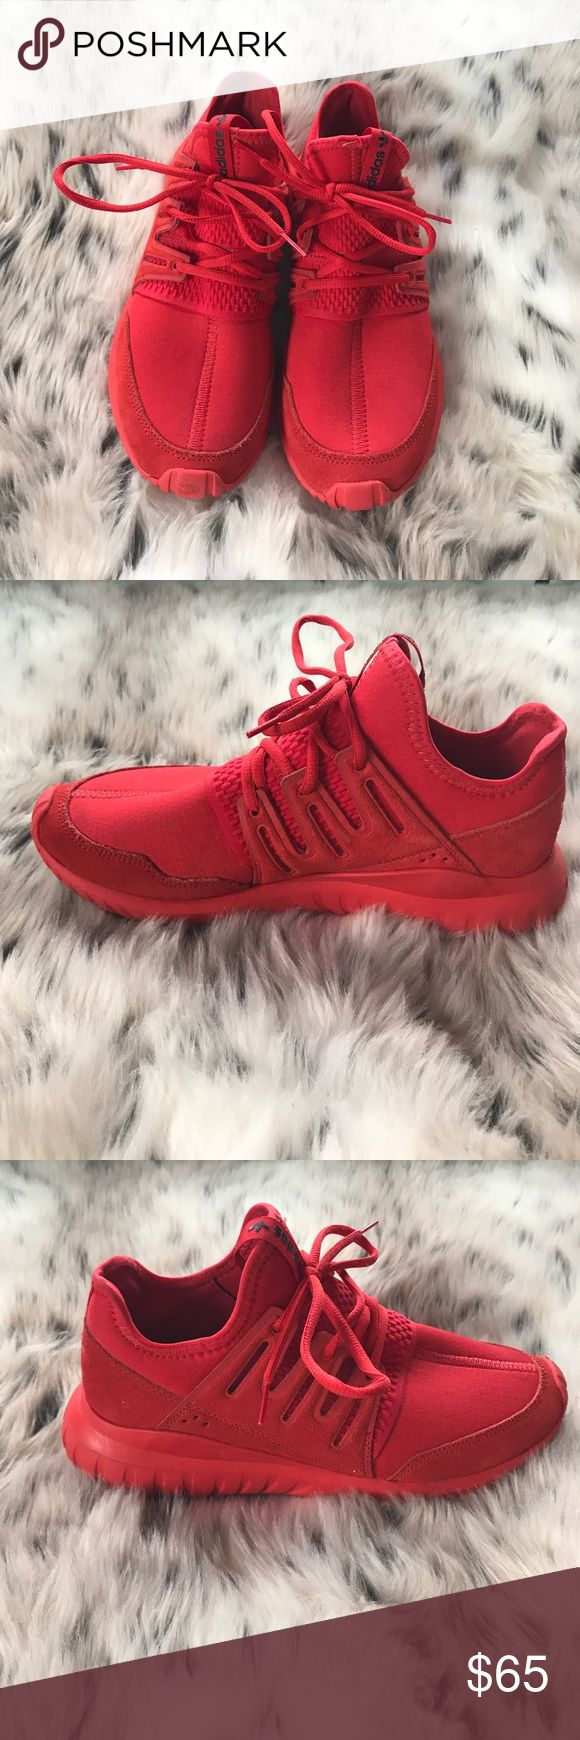 Red Adidas high top shoes All red Adidas shoes foam air bottoms, very light Adidas Shoes Sneakers http://feedproxy.google.com/fashionshoes1